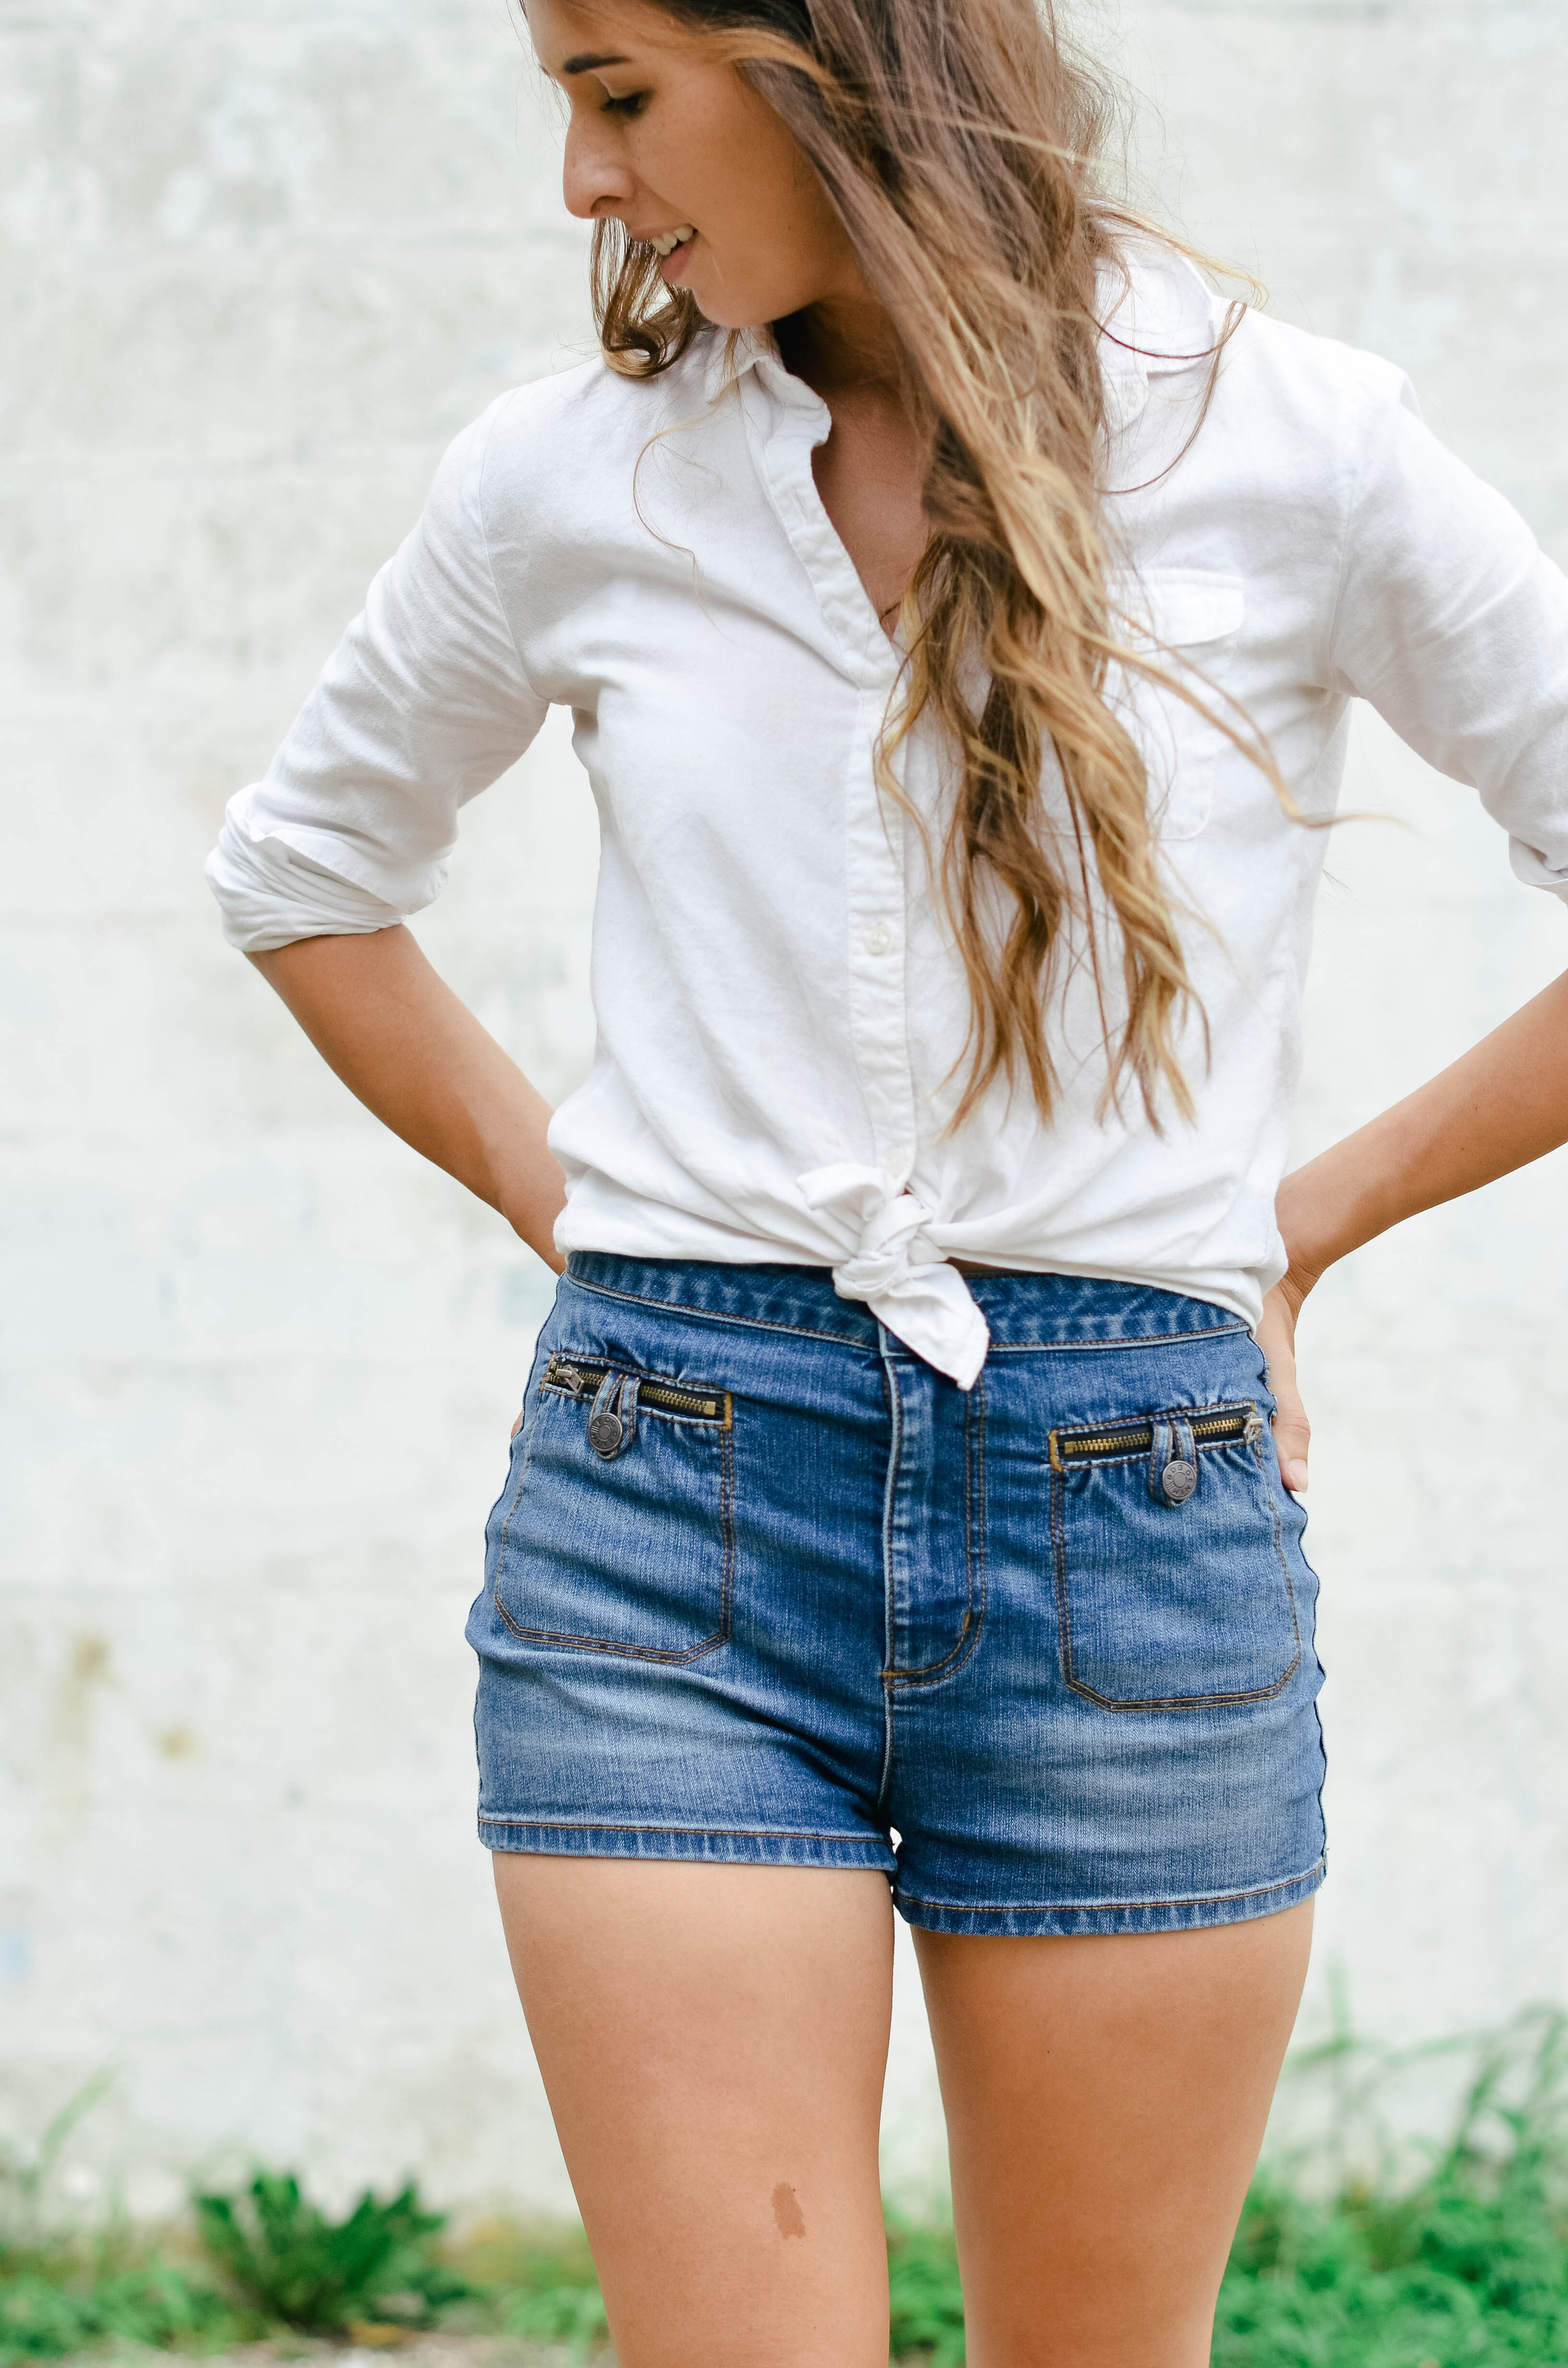 Summer High Rise Shorts Style